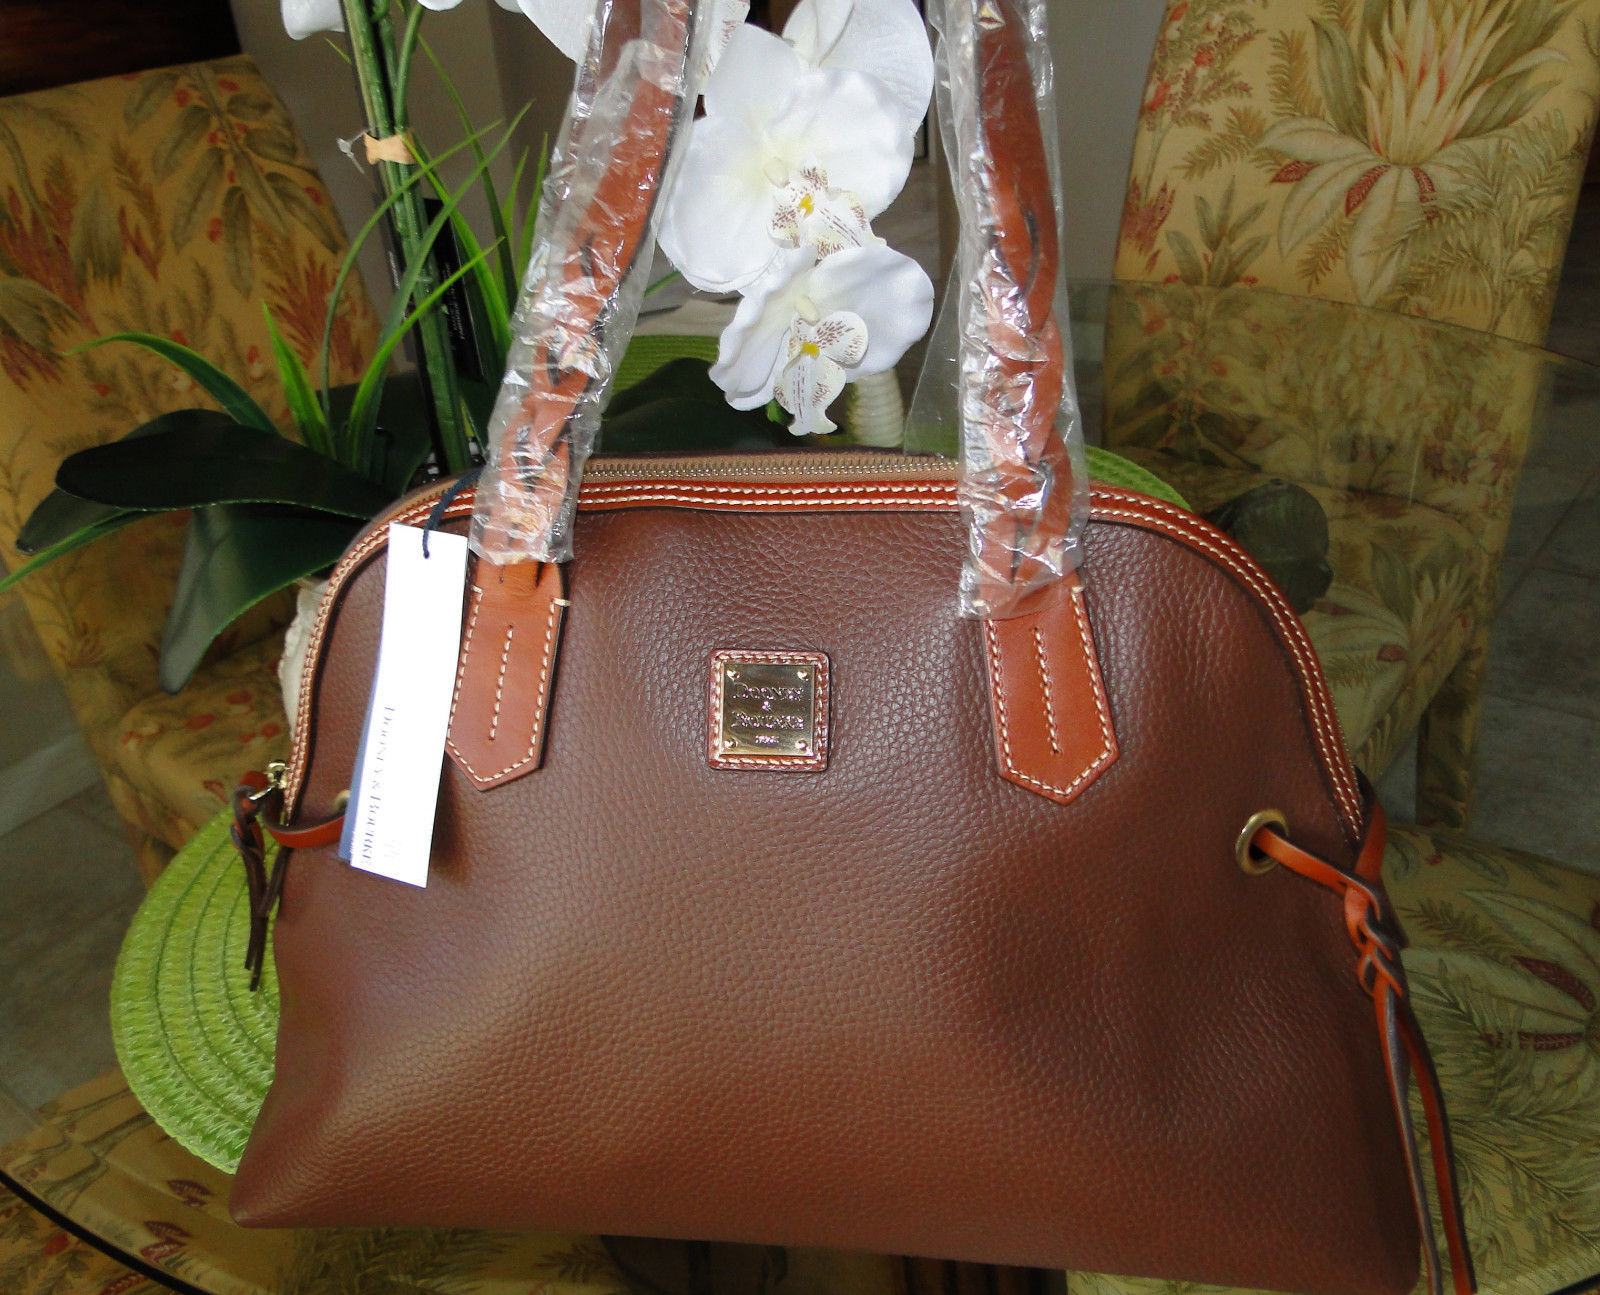 Dooney & Bourke Domed Pebble Leather Shoulder Bag